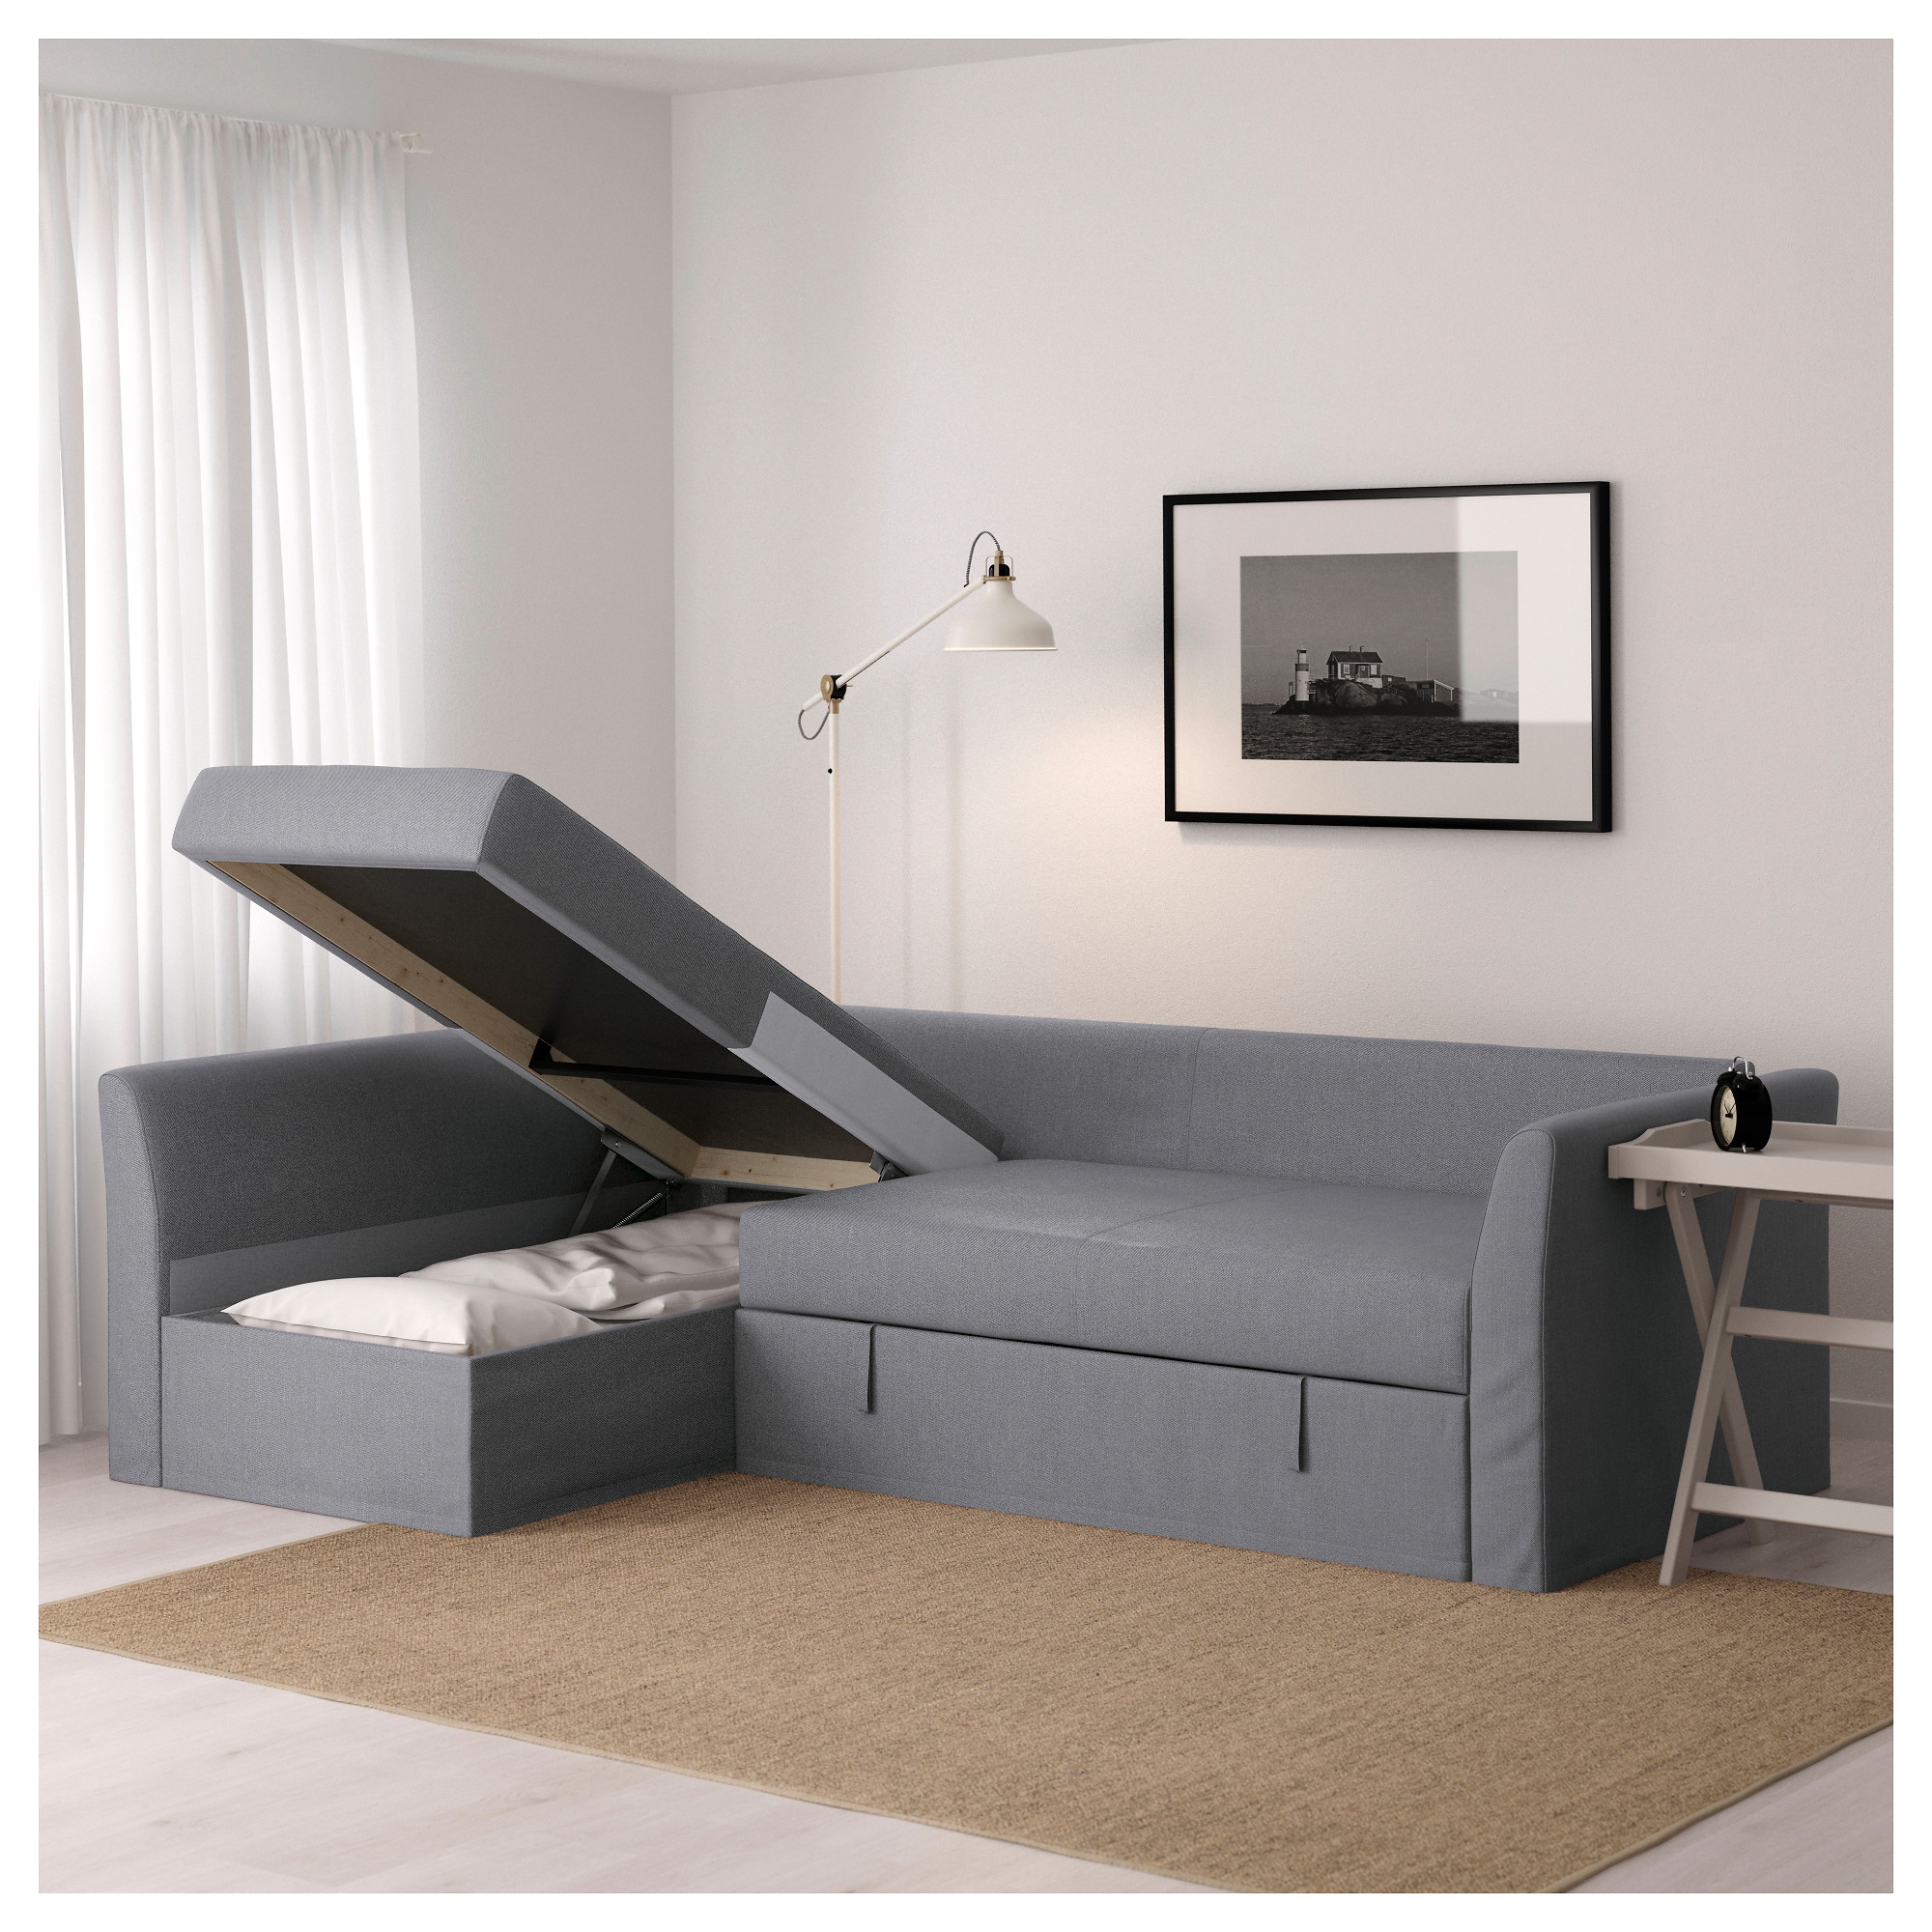 : ikea sofa bed chaise - Sectionals, Sofas & Couches